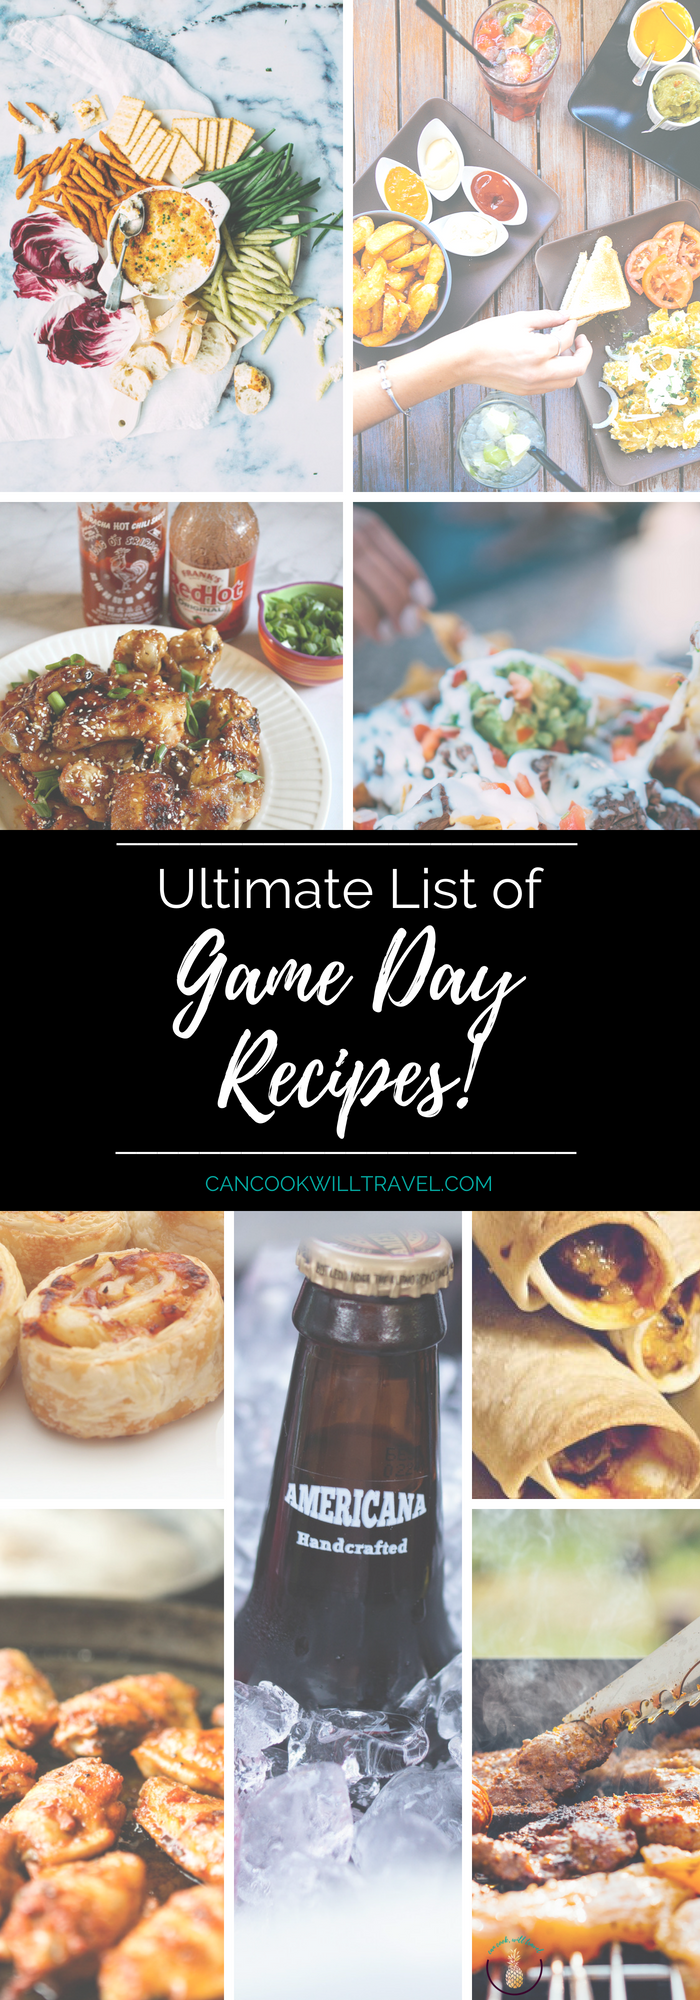 Ultimate List of Game Day Recipes_Tall